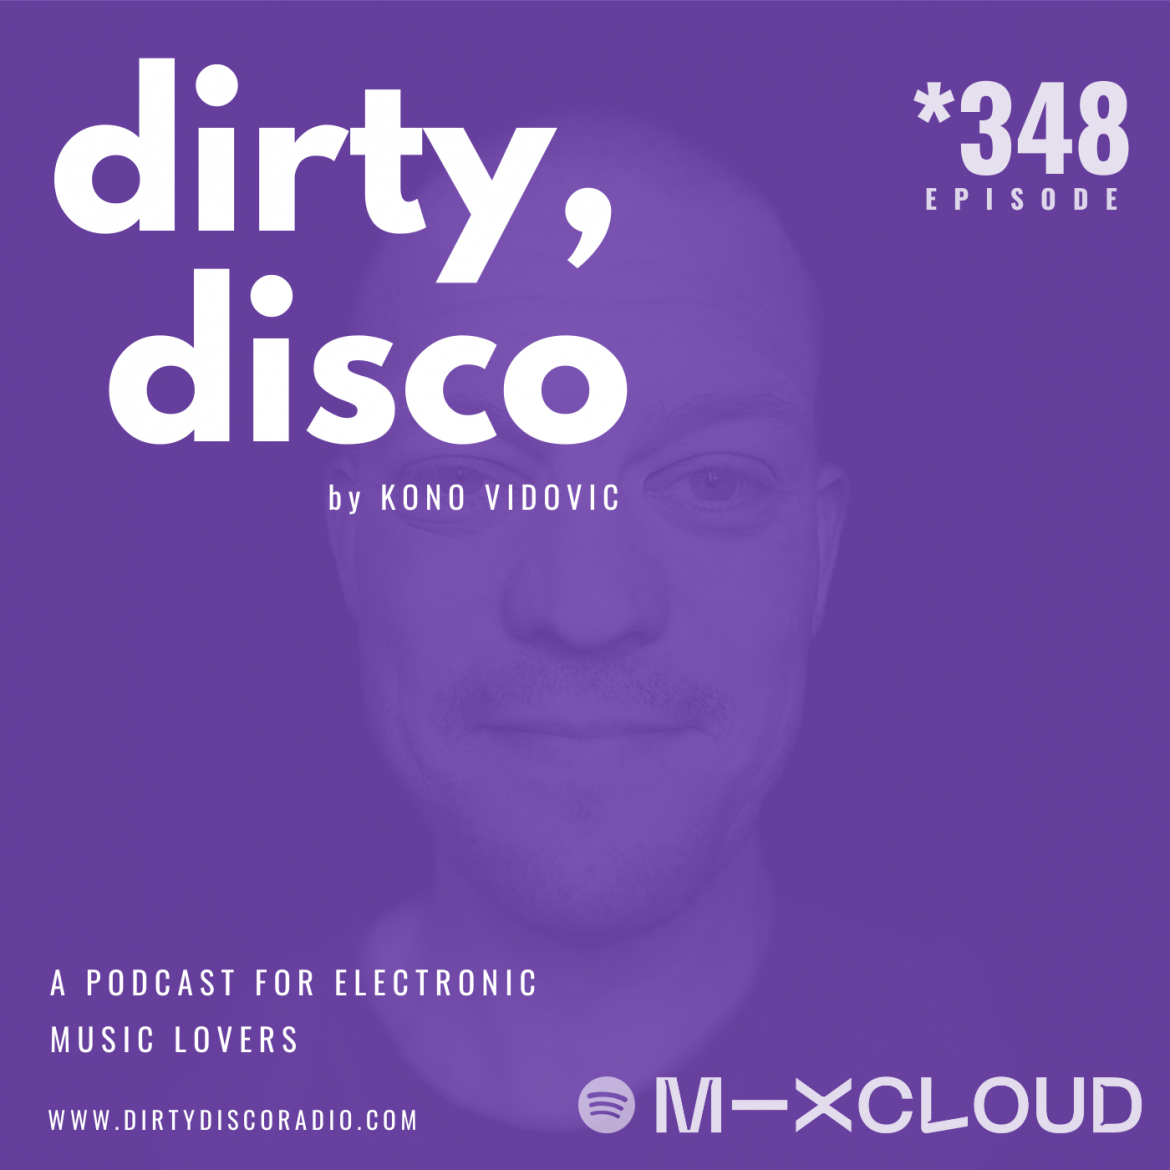 Social distancing in Electronic music show 348 | Dirty Disco | Flatten The Curve